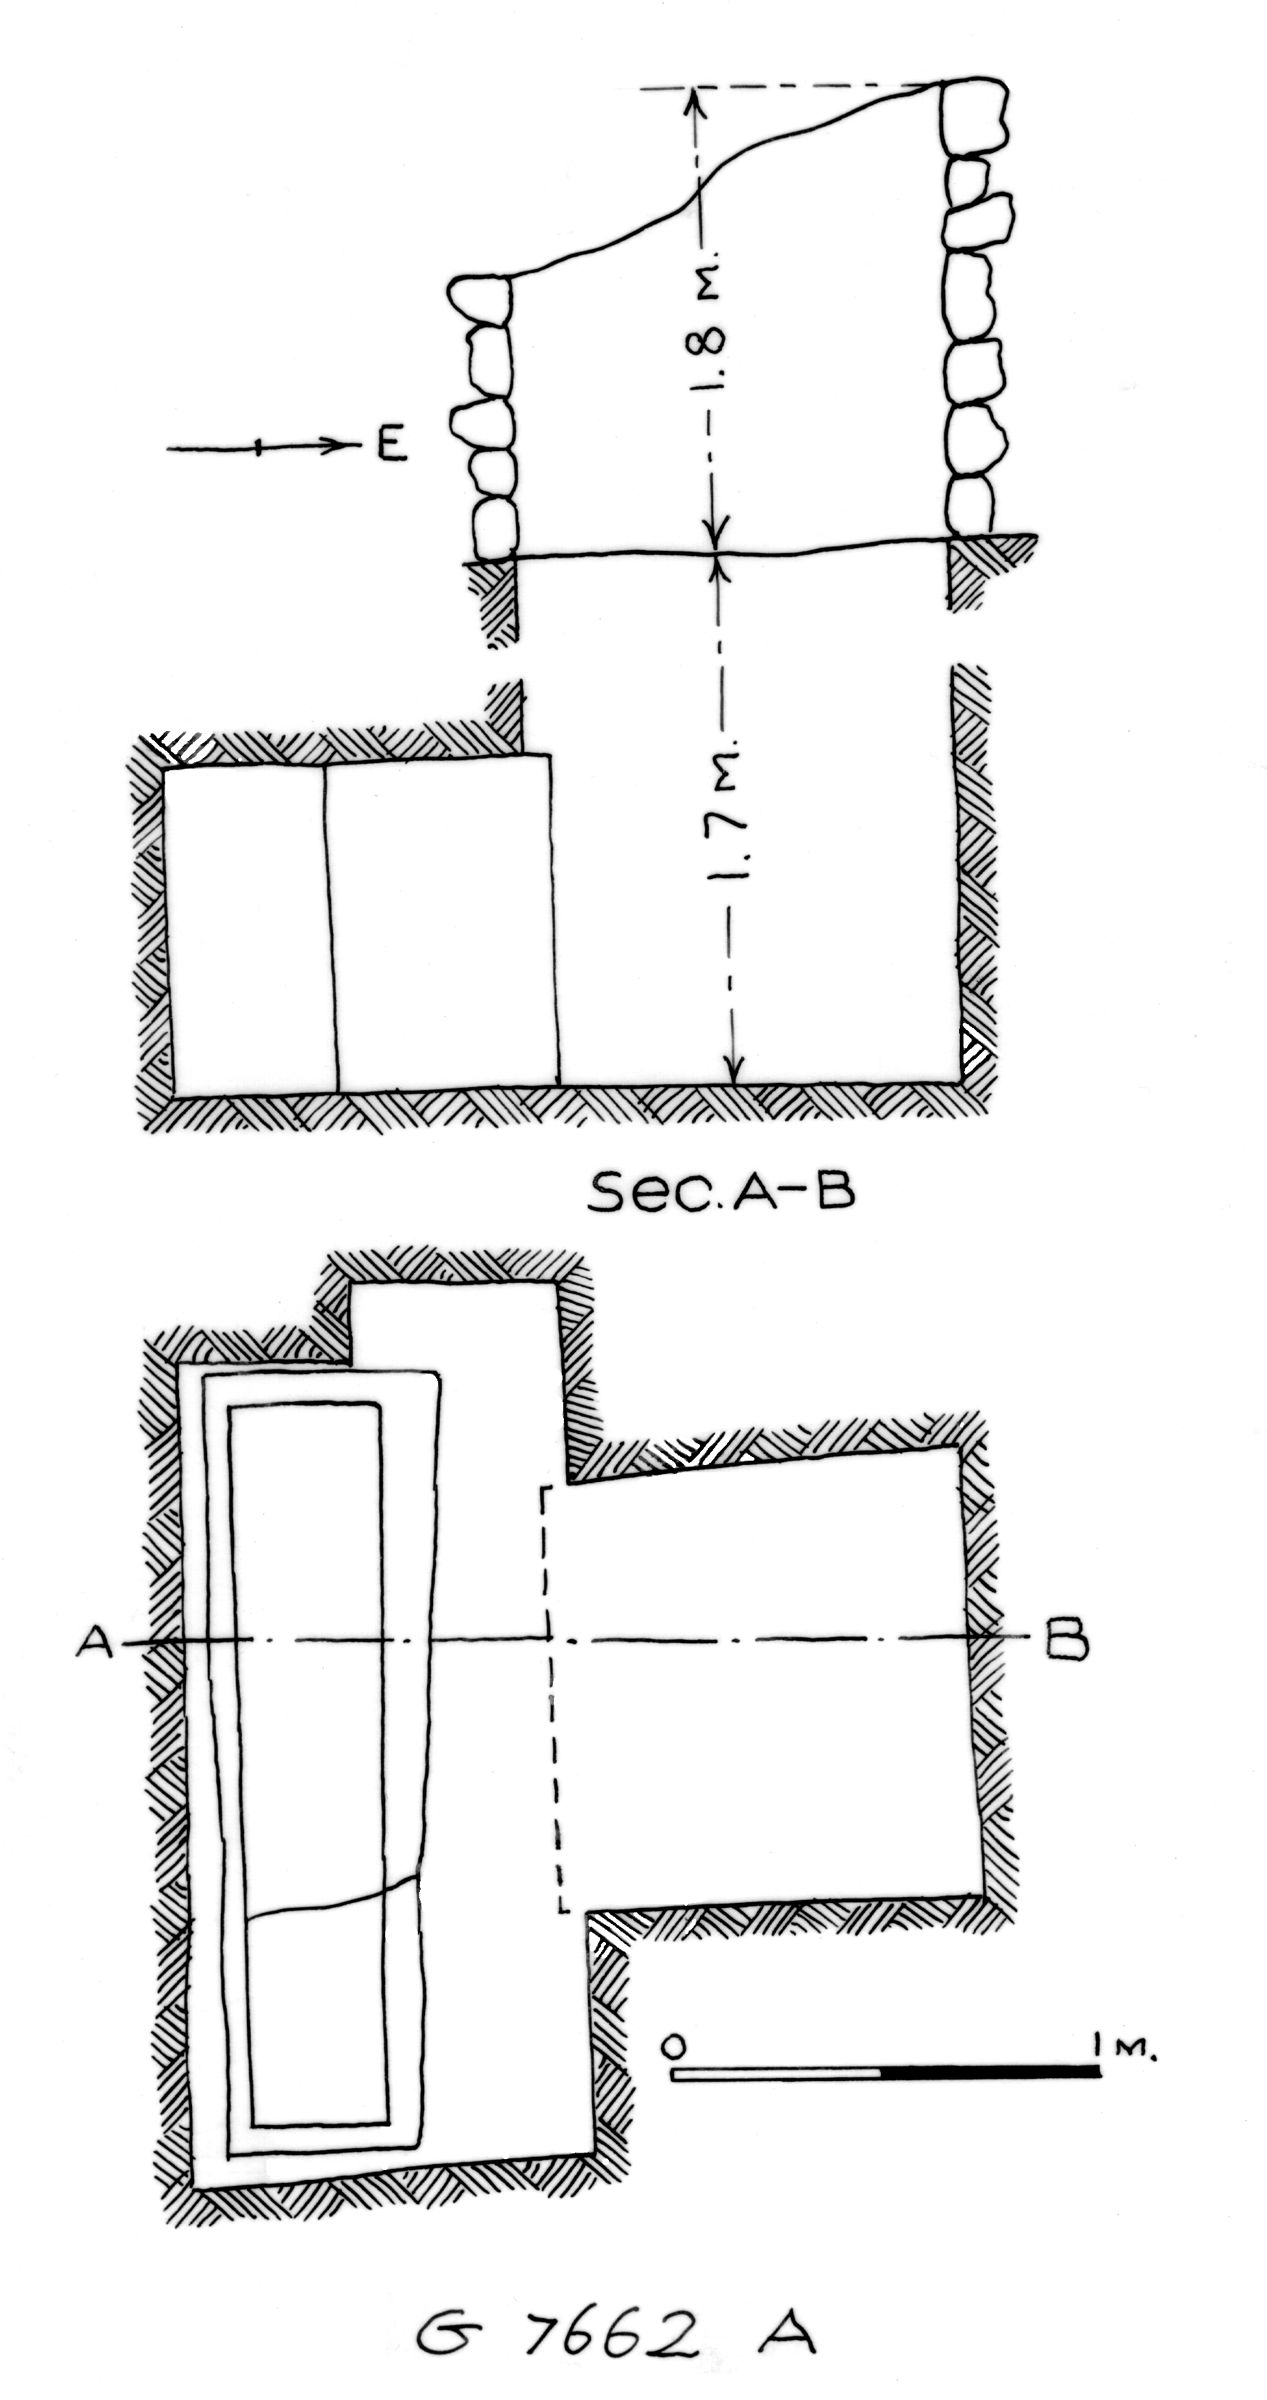 Maps and plans: G 7662, Shaft A